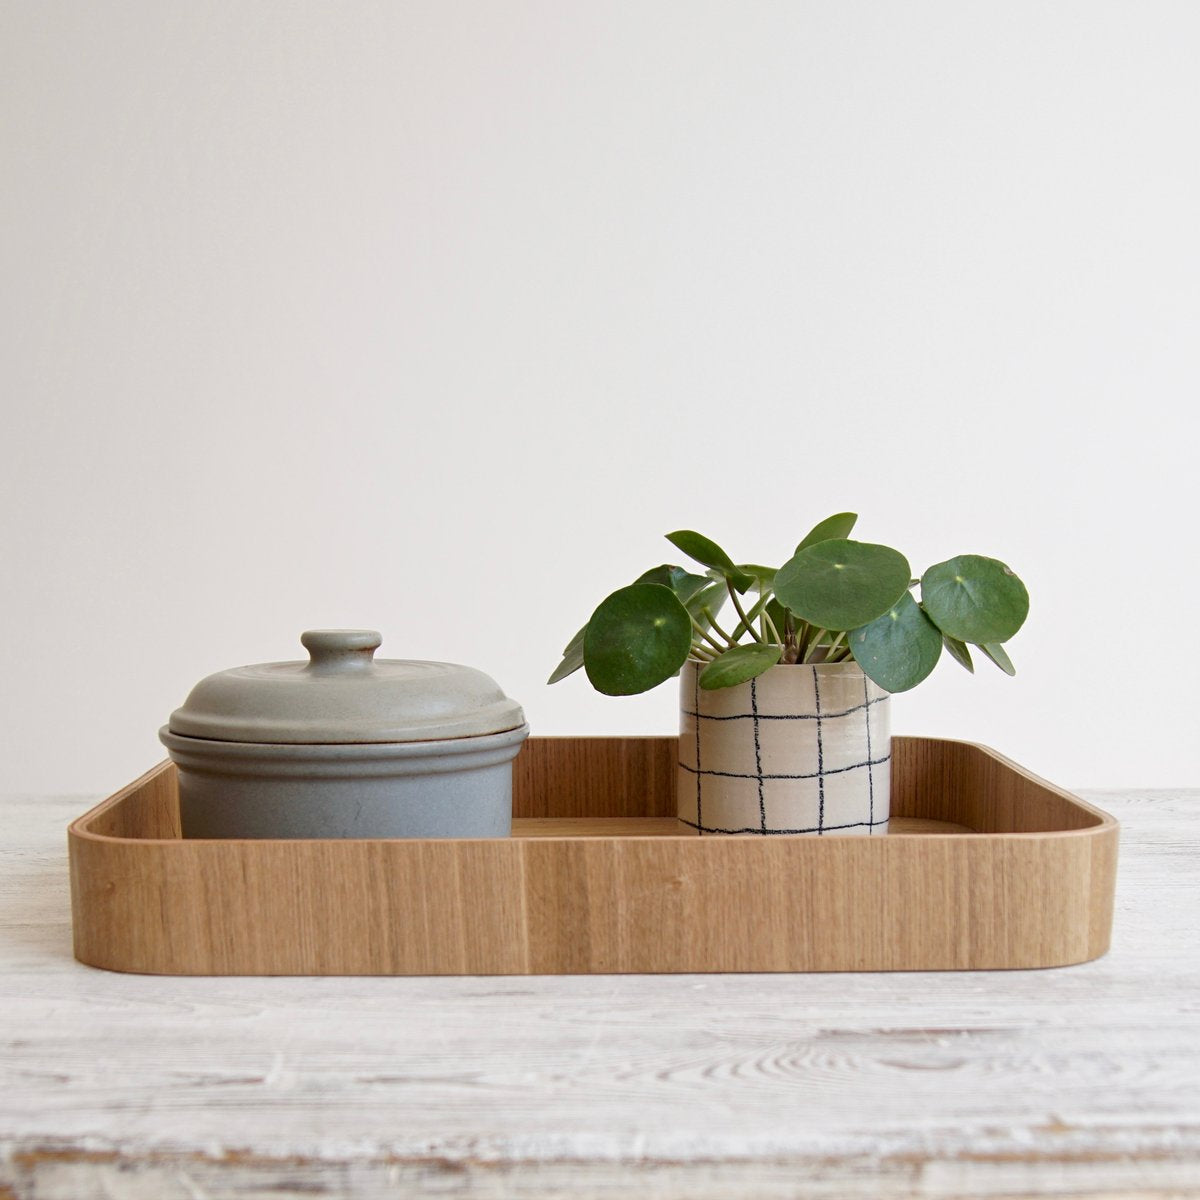 plywood tray featuring two plant pots